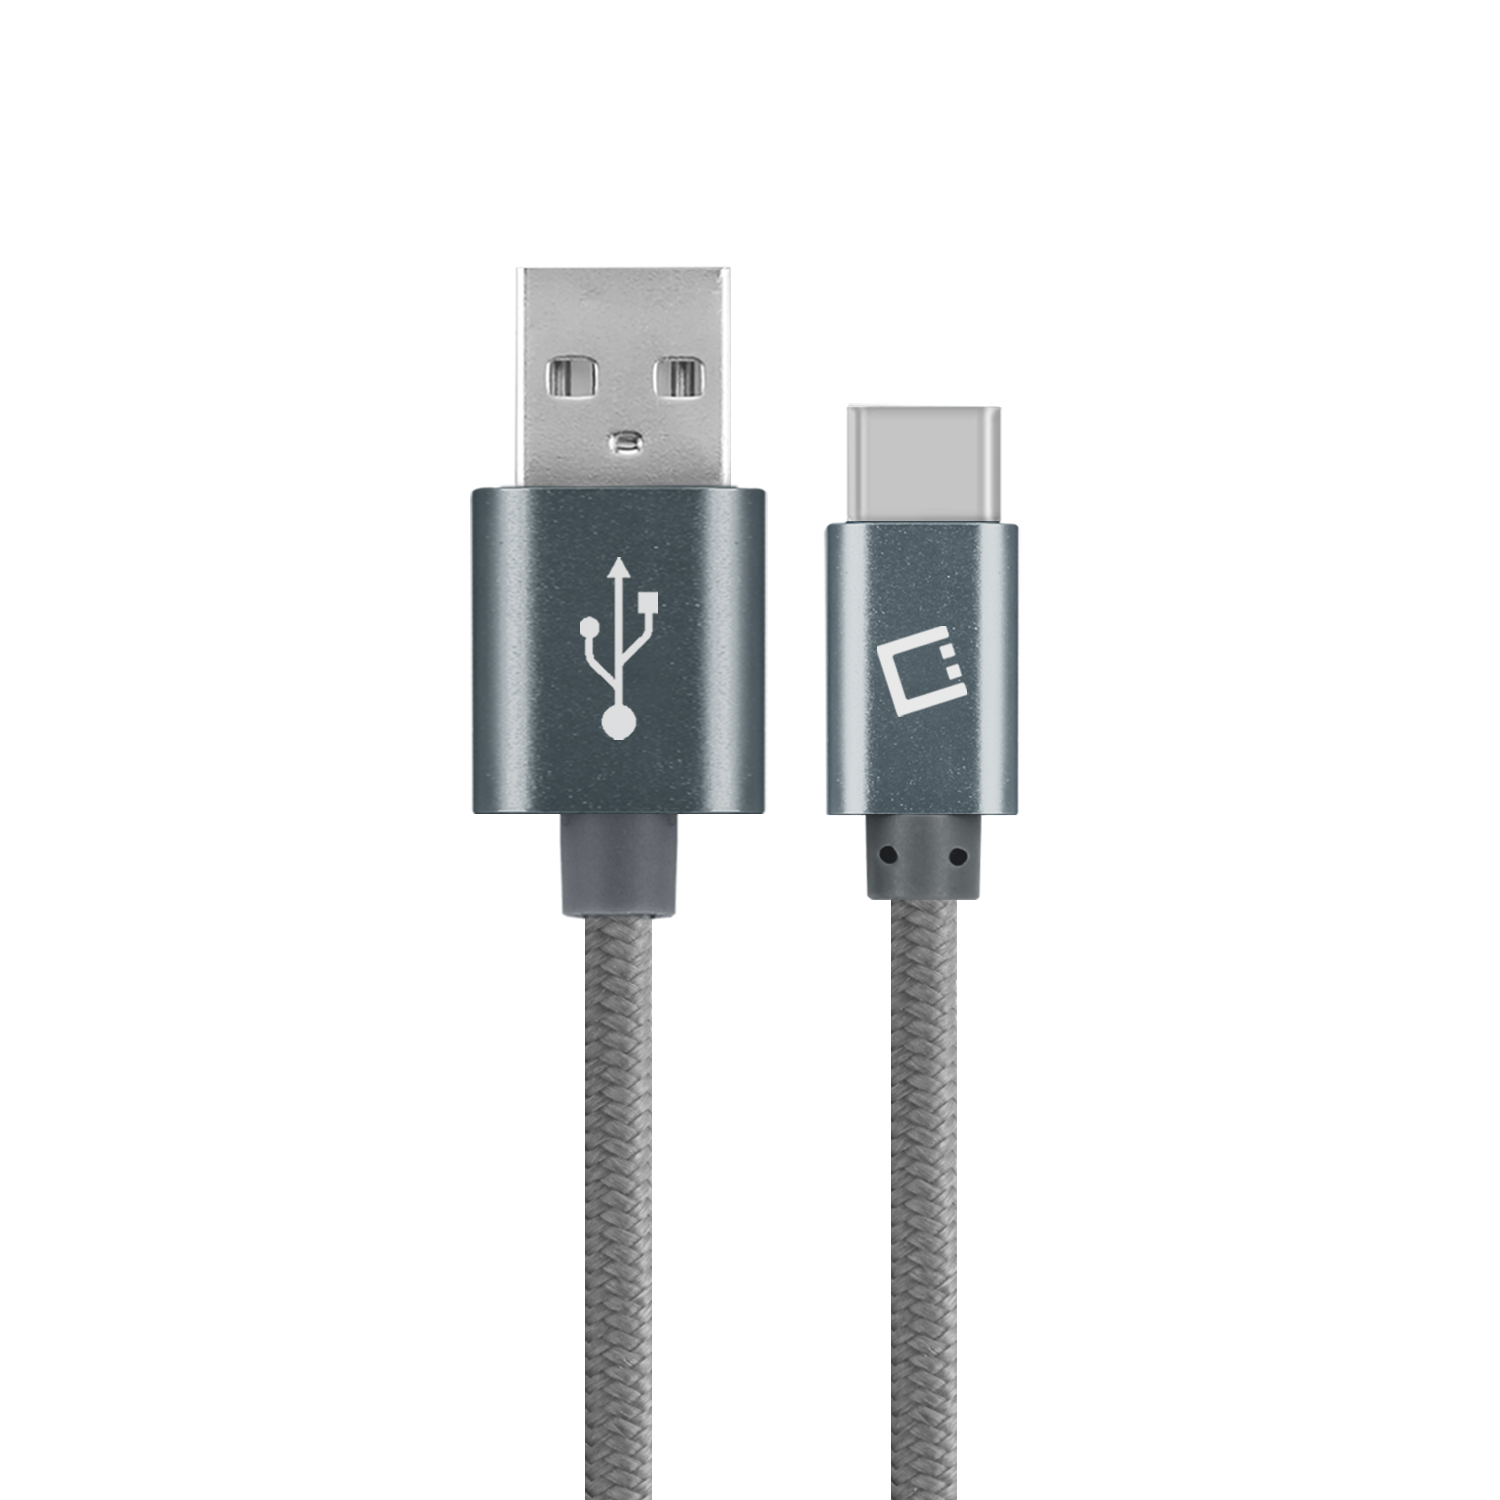 LG Stylo 6 USB Type-C To Type-A Braided Data Power Cable Grey 10ft Braided